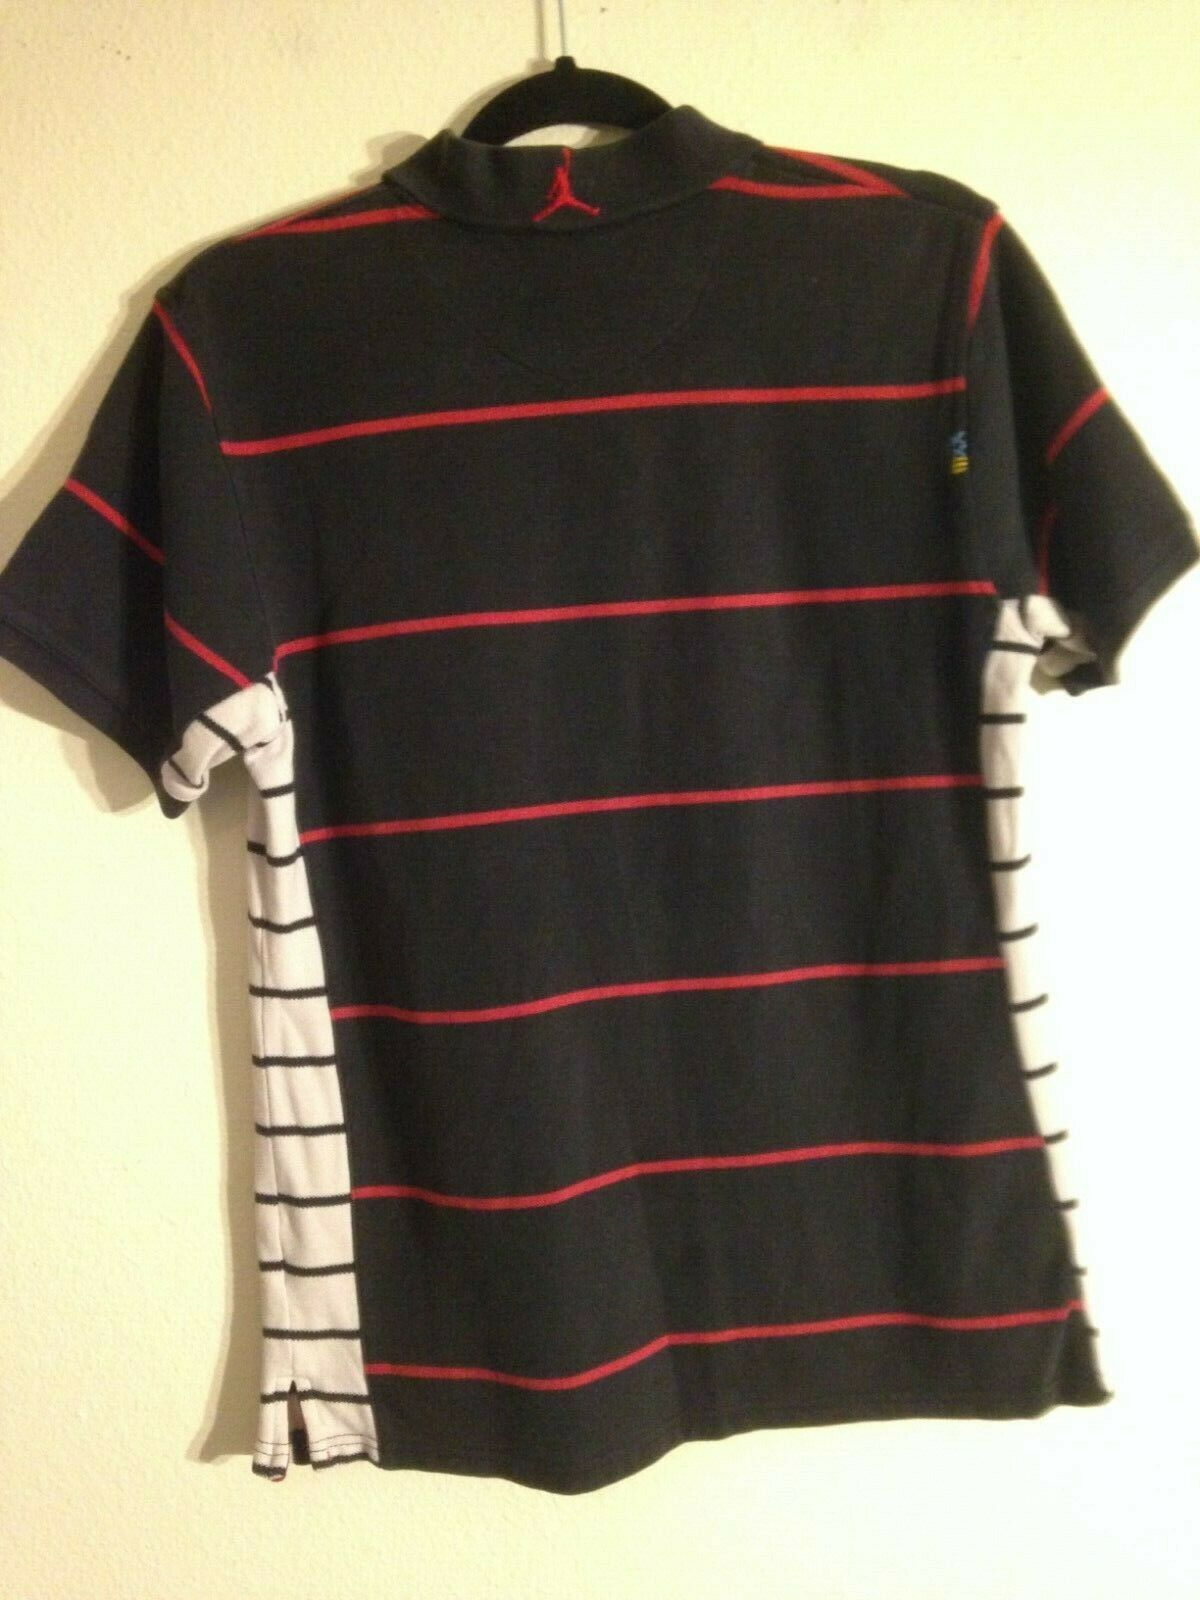 Vintage Air Jordan Youth XL Stretch Woven Top Black Red Striped image 2